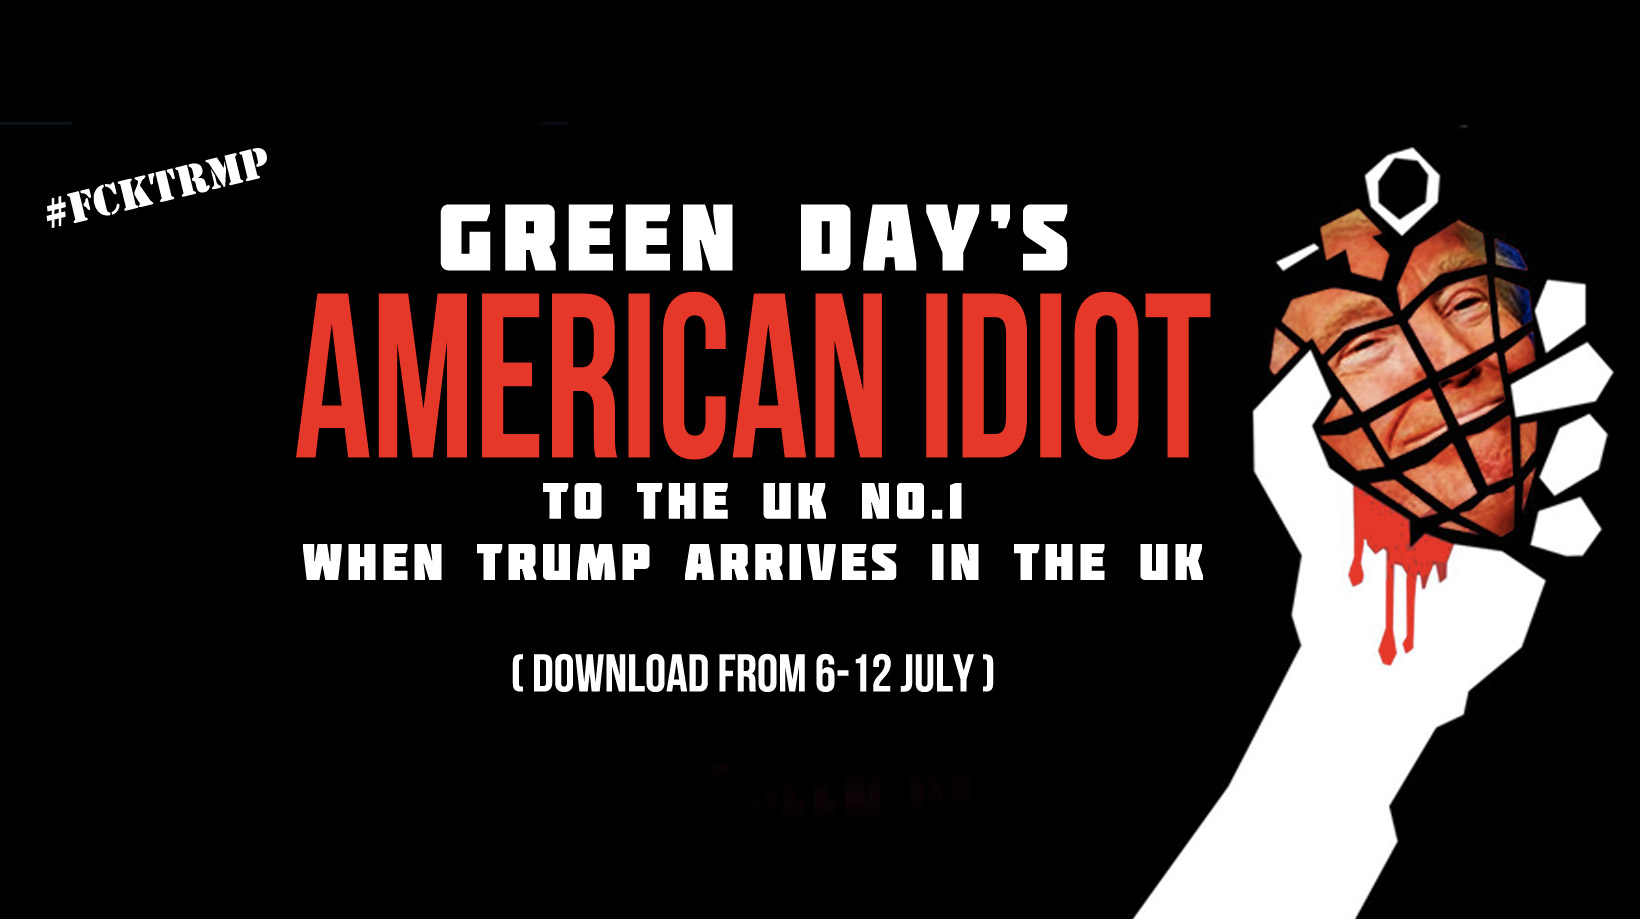 trump american idiot visit england Campaign launched to get Green Days American Idiot to No. 1 in time for Trumps UK visit